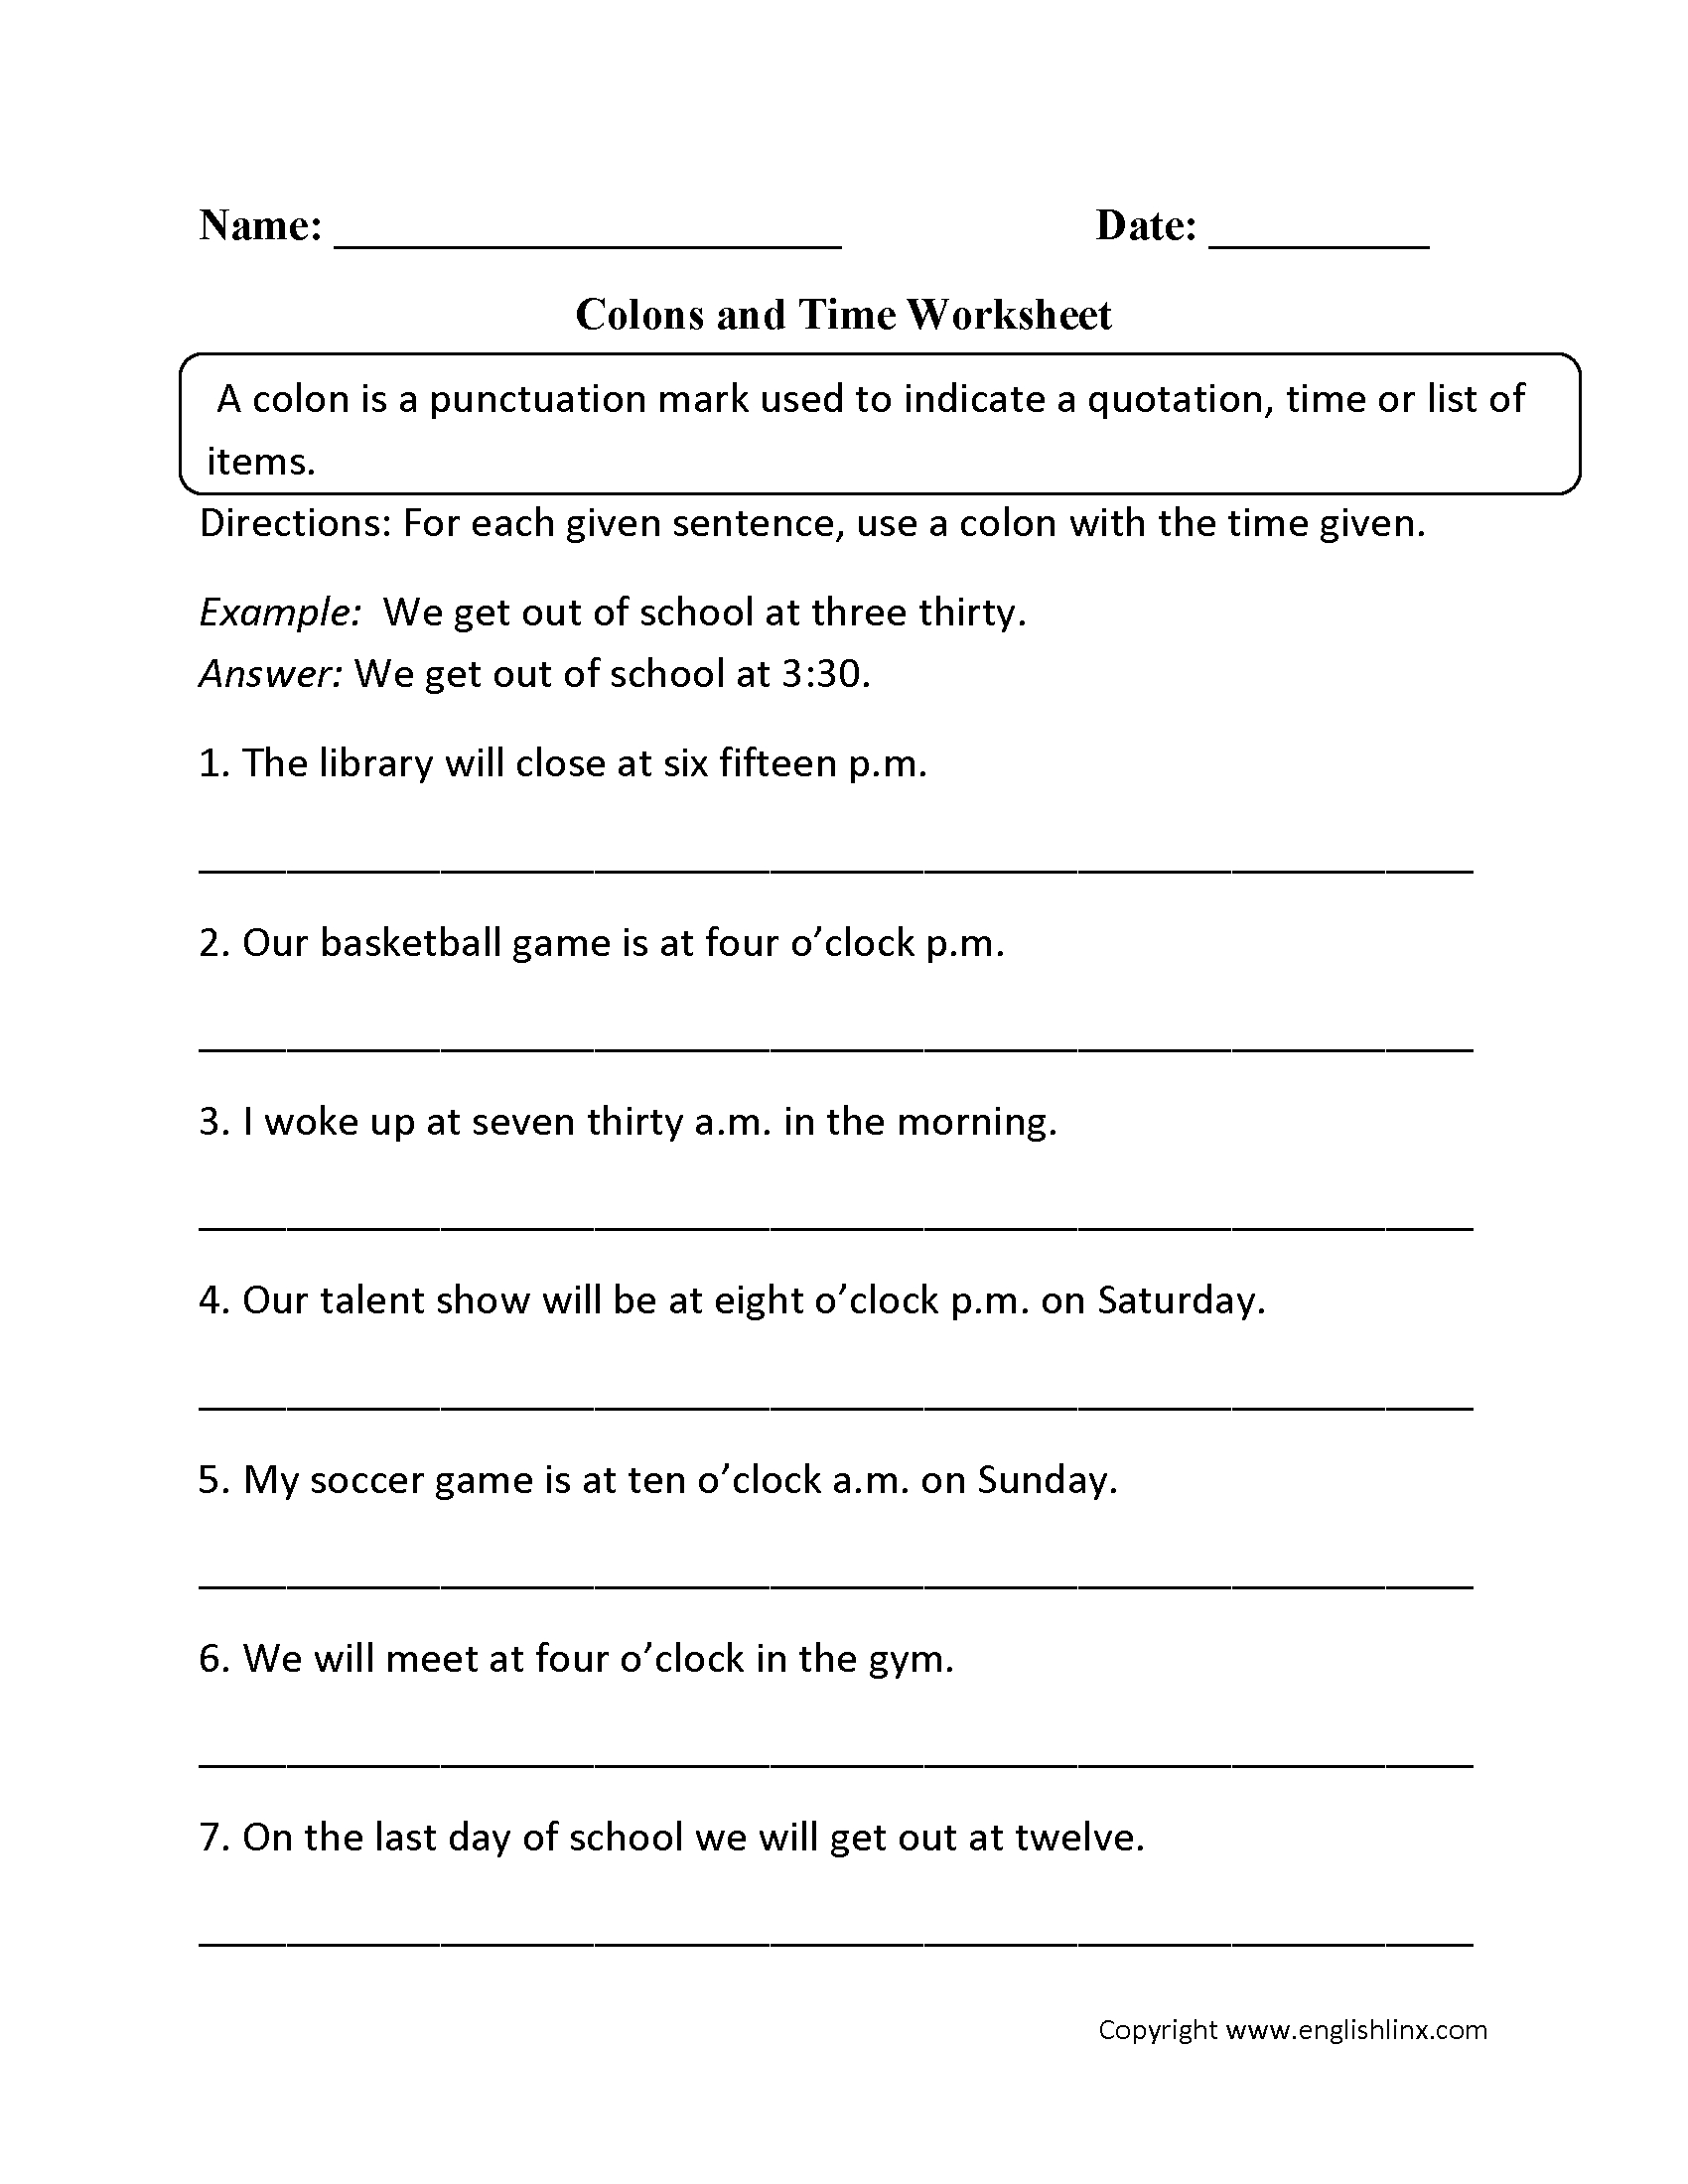 Punctuation Worksheets | Colon Worksheets - Free Printable 5 W's Worksheets